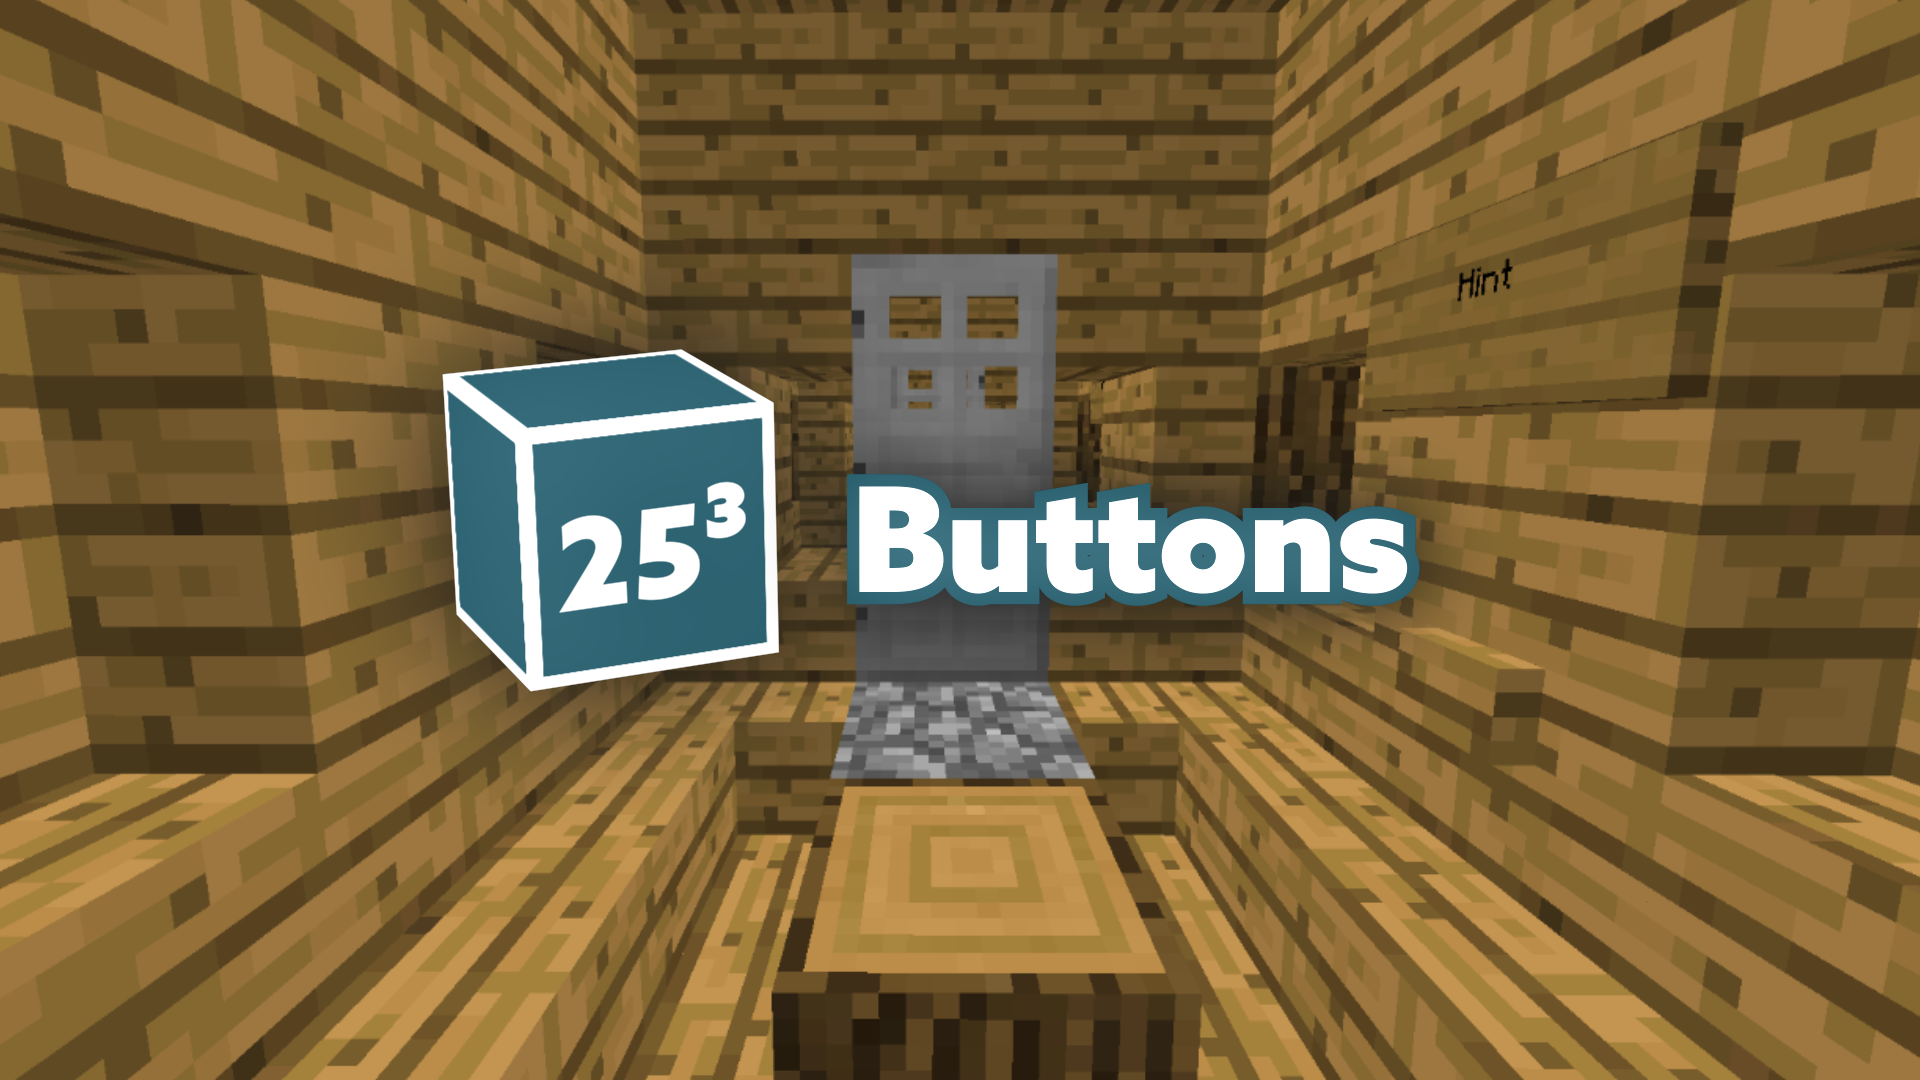 25³ Buttons